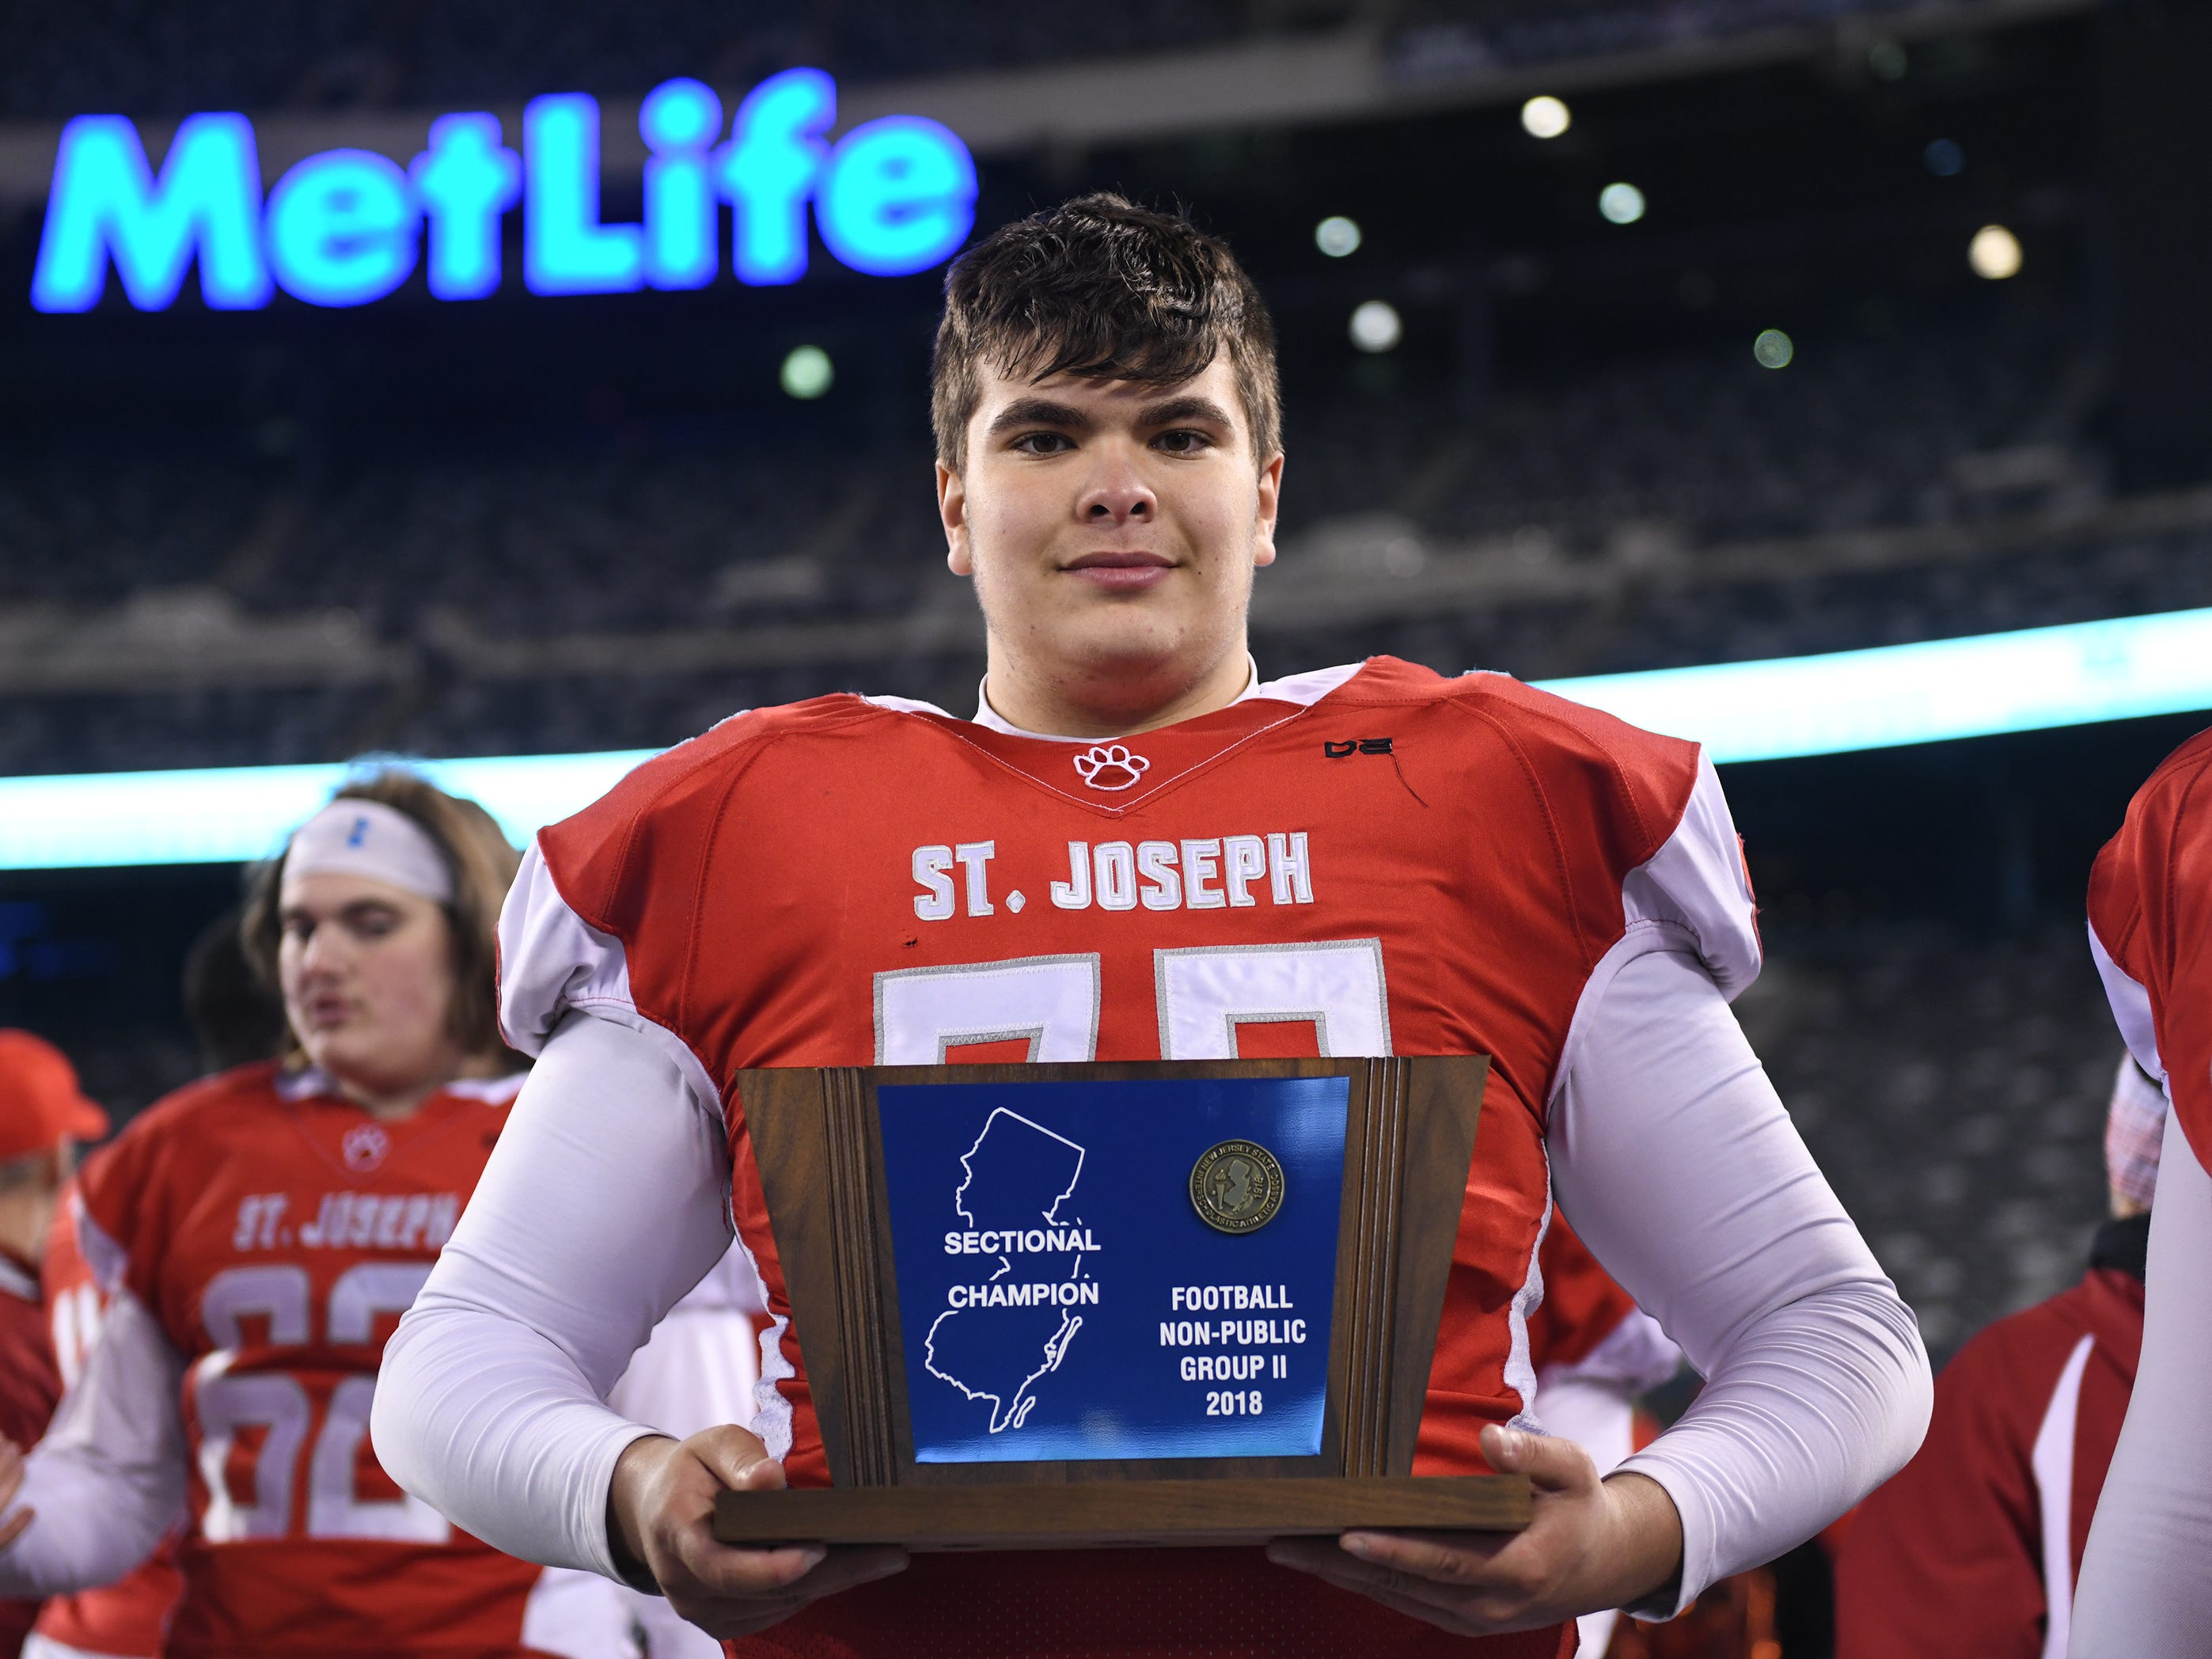 St. Joseph's Dominic Midure holds the Non-Public 2 state championship trophy after the Wildcats topped the Spartans, 41-22 at MetLife Stadium on Friday, November 30, 2018.